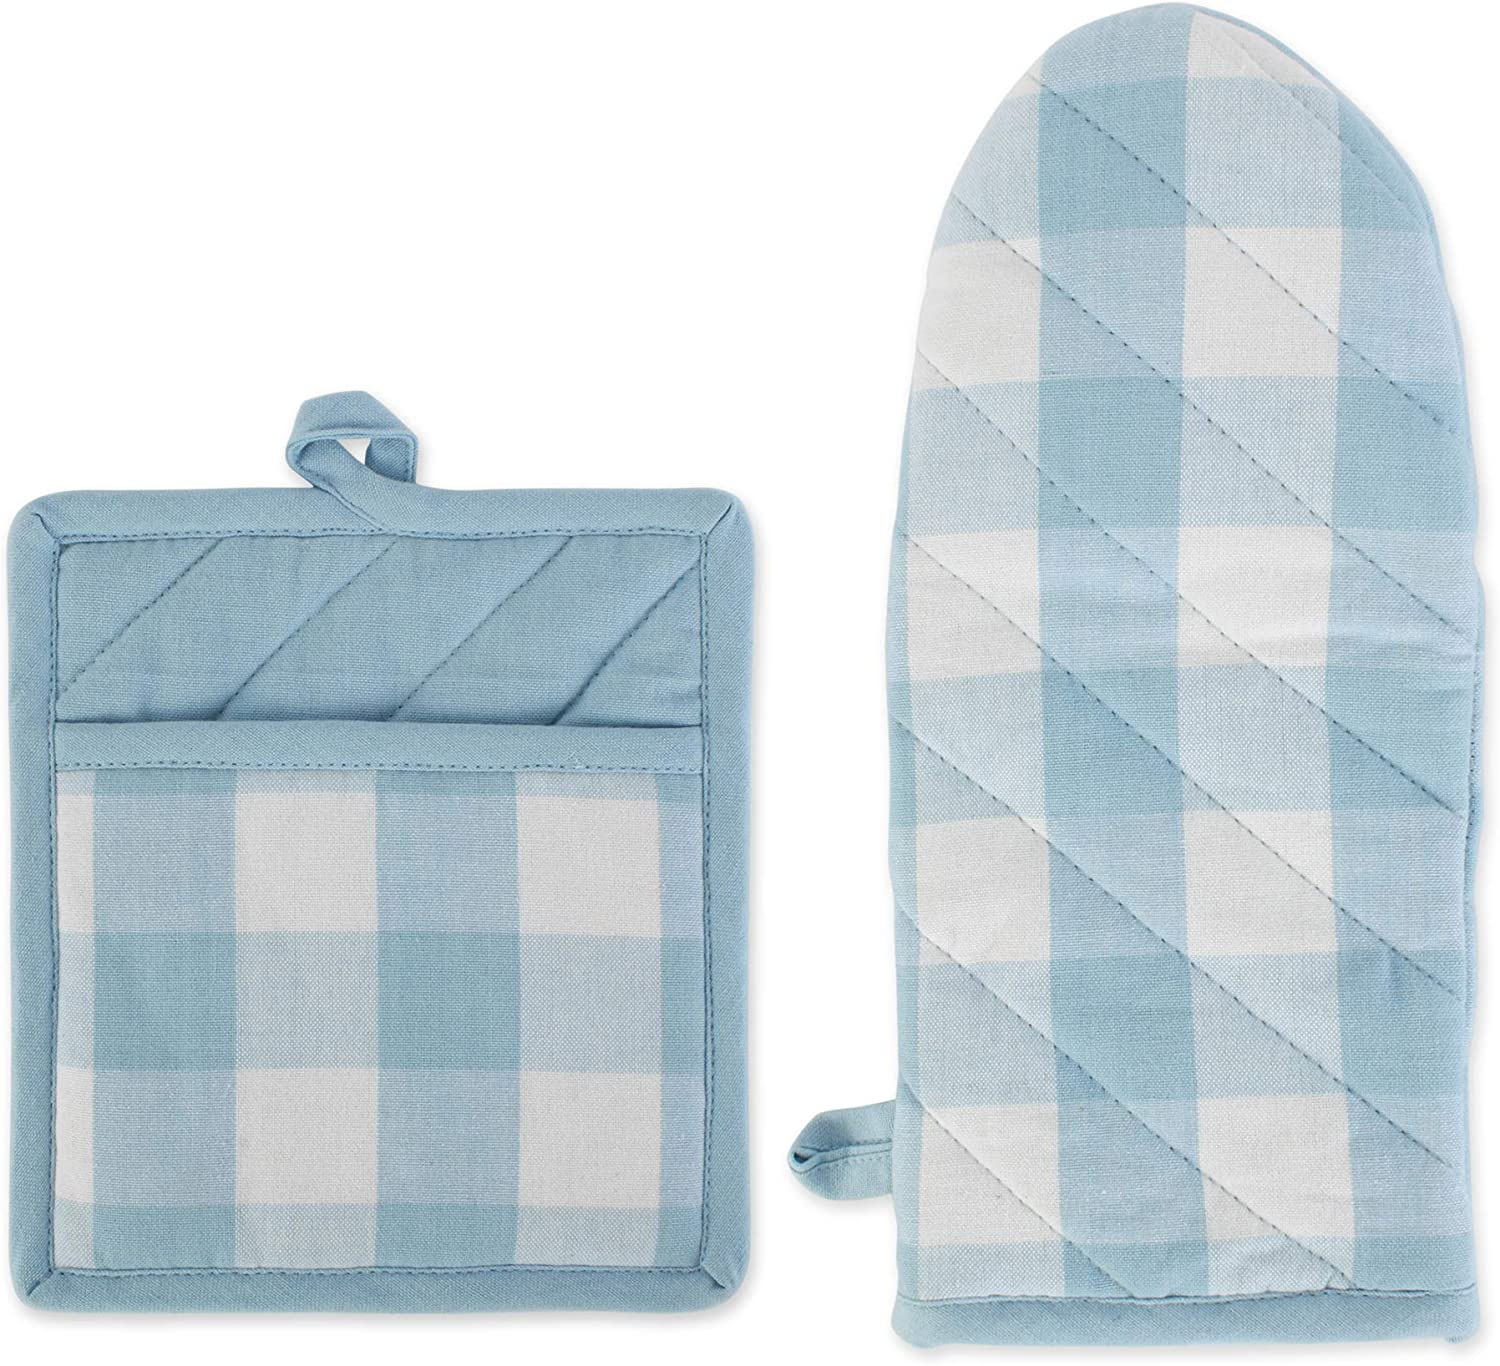 DII Buffalo Check Kitchen Collection Classic Farmhouse Style for Your Home and Kitchen, Oven Mitt/Potholder Set, White & Light Blue 2 Piece